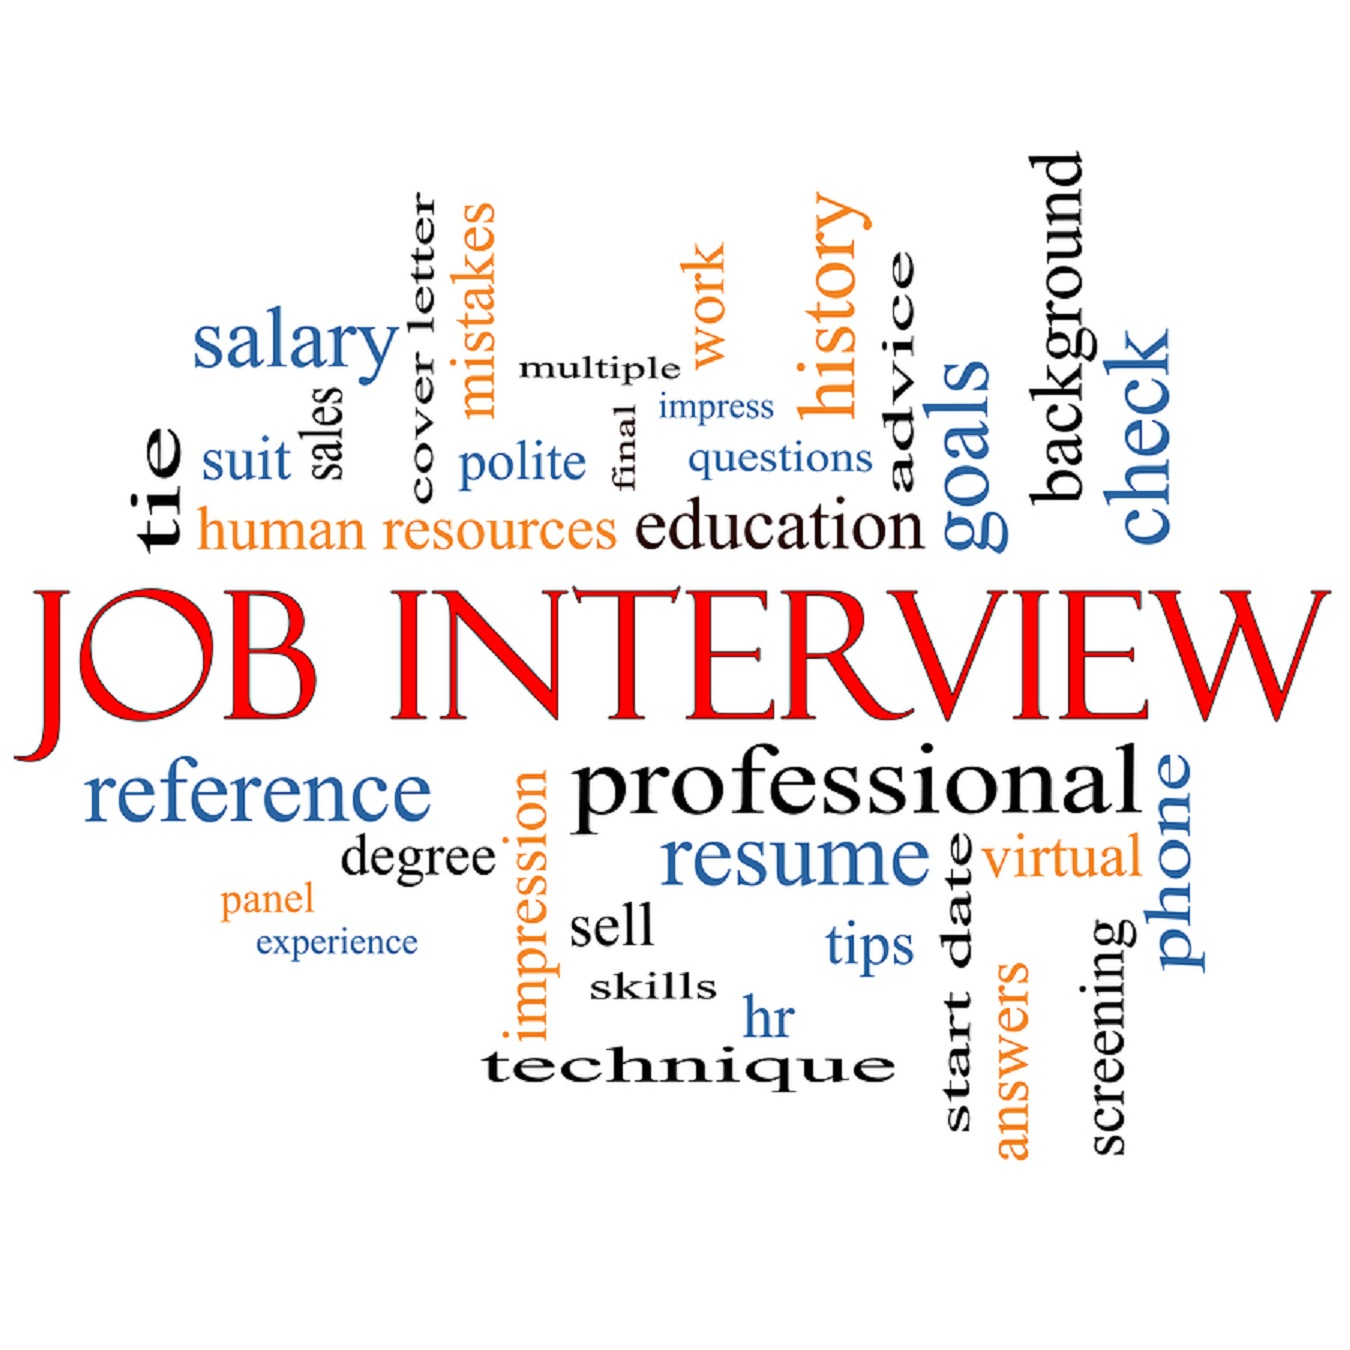 share your interview experience javare ed contribute to javare ed share your interview experience